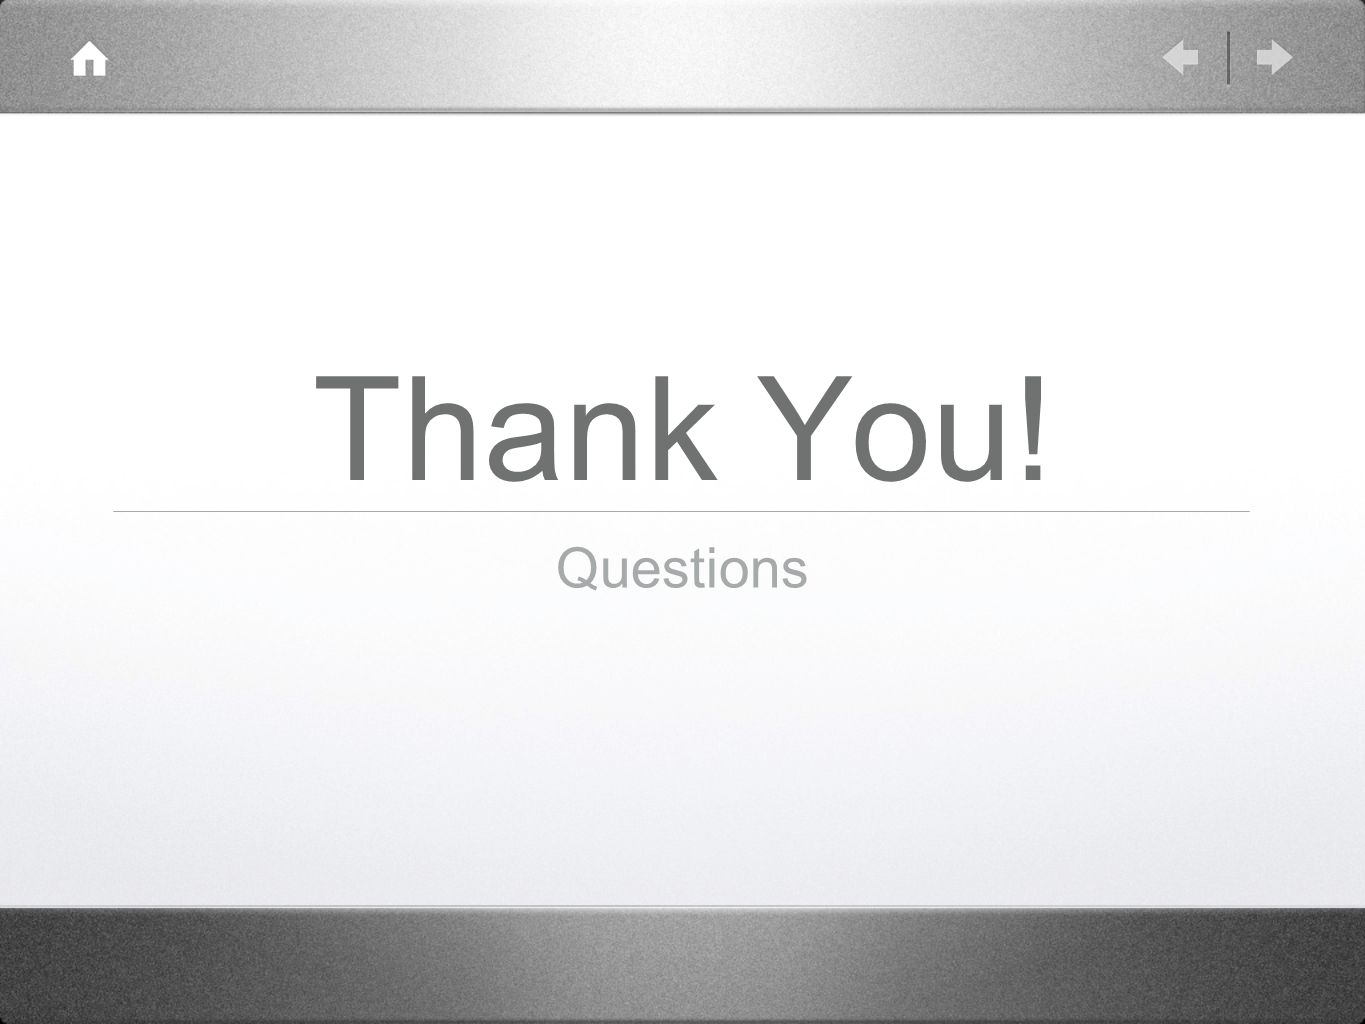 Thank You! Questions